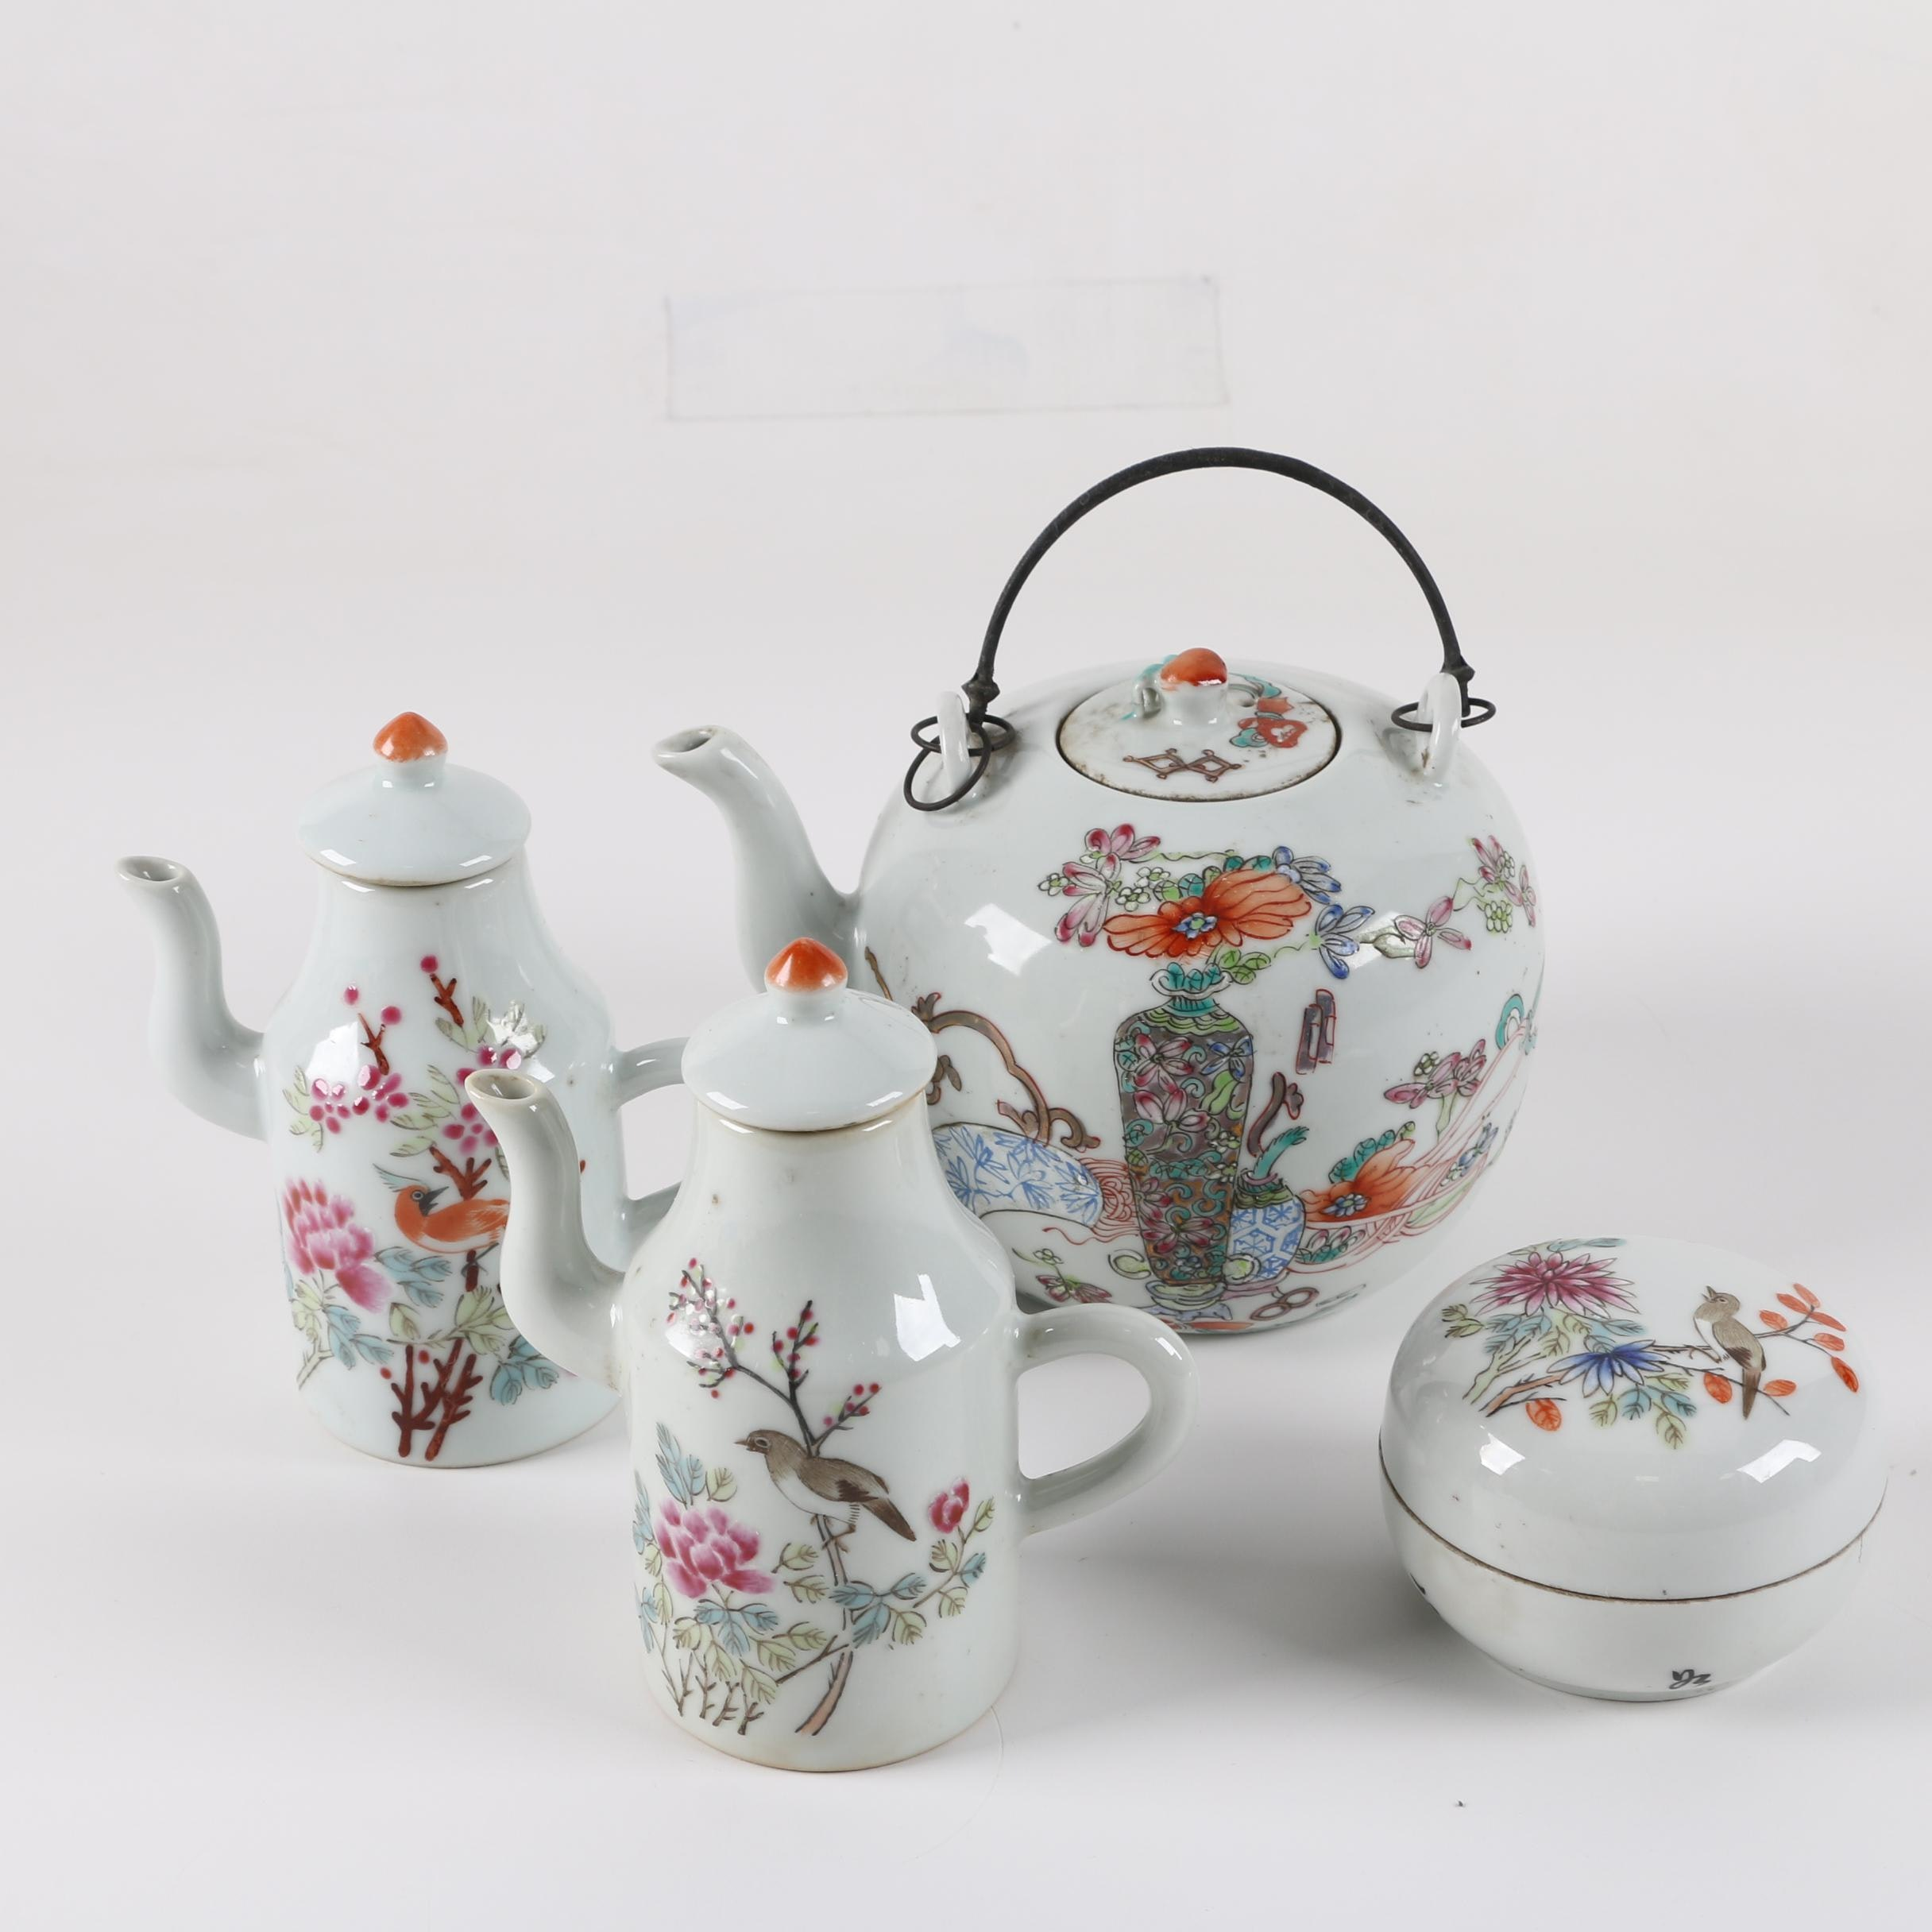 Chinese Porcelain Teapot, Creamers and Lidded Bowl